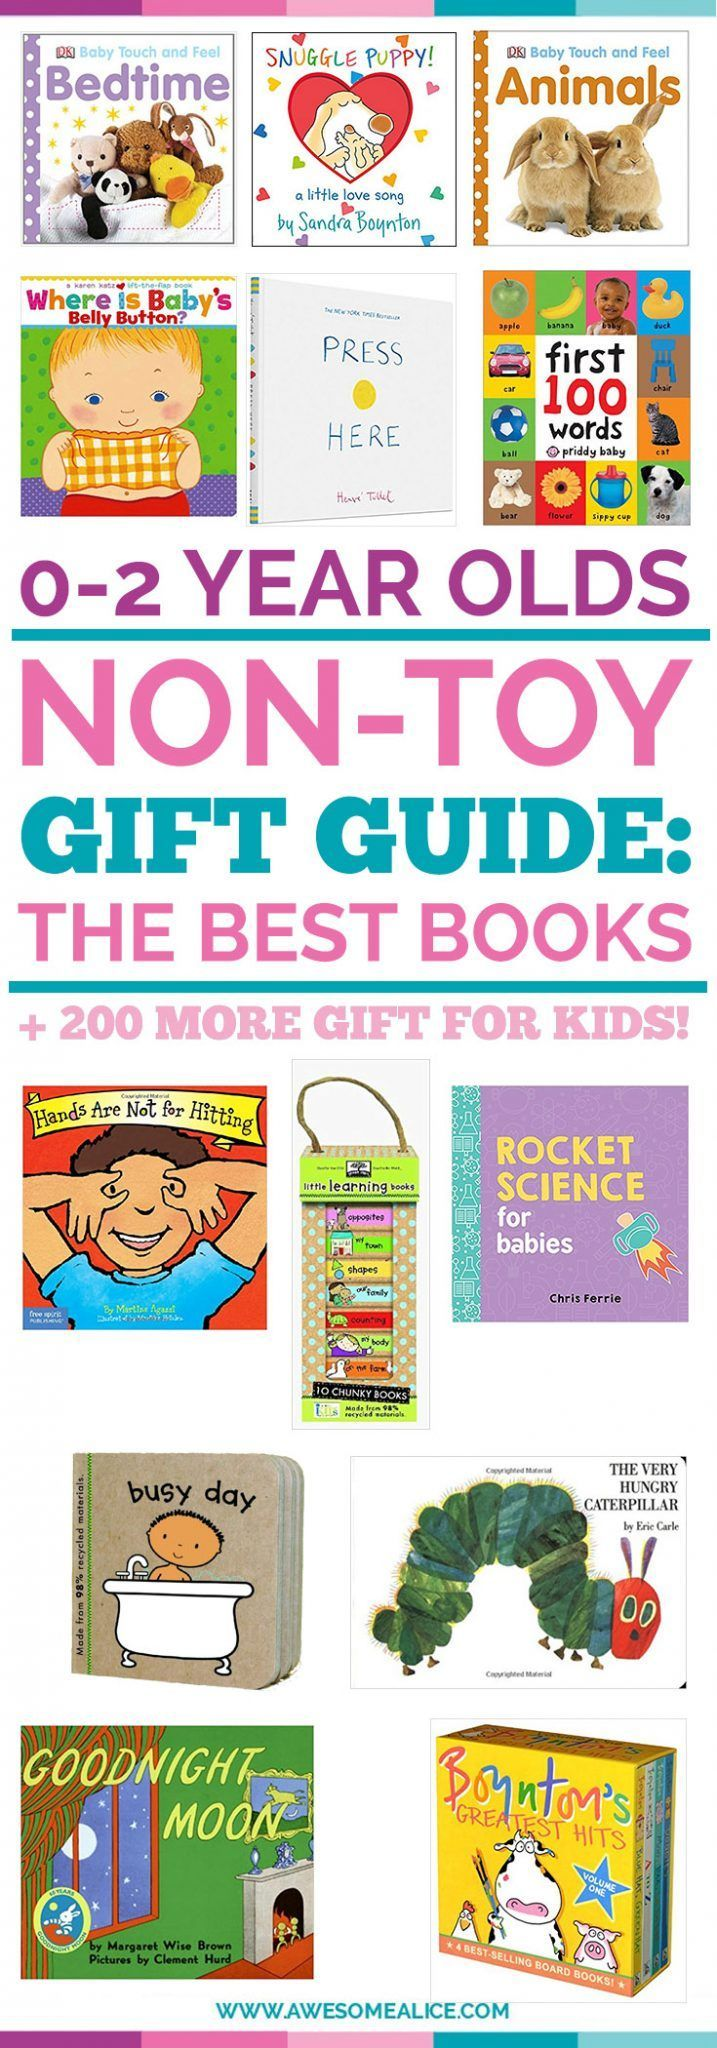 Book Gift Guide For Babies And Toddlers | Christmas Gifts For Kids | Perfect Christmas Gift For Babies | The Best Toddler Books | The Best Baby Books | Toddler Christmas Gift Guide | The Best Kids Gift Guide| Holiday Gifts For Kids | #giftguide | #toddlers| #Christmas | www.awesomealice.com